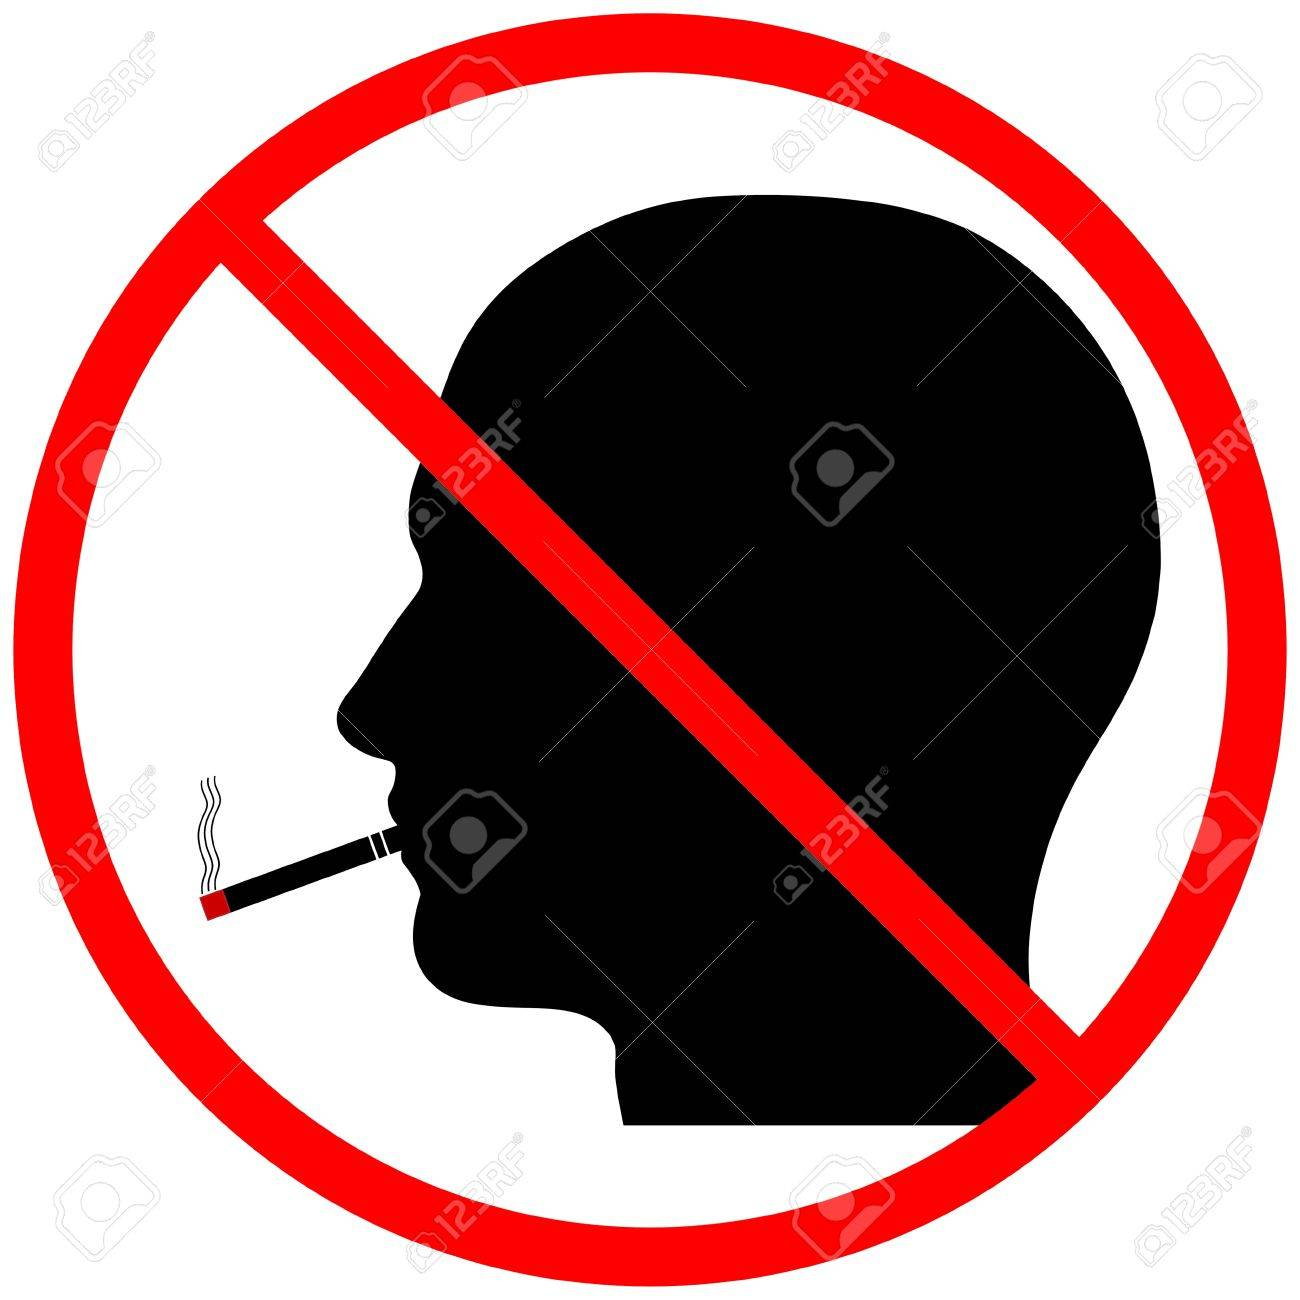 A graphic warning that smoking is prohibited, isolated on a solid white background Stock Photo - 13612820